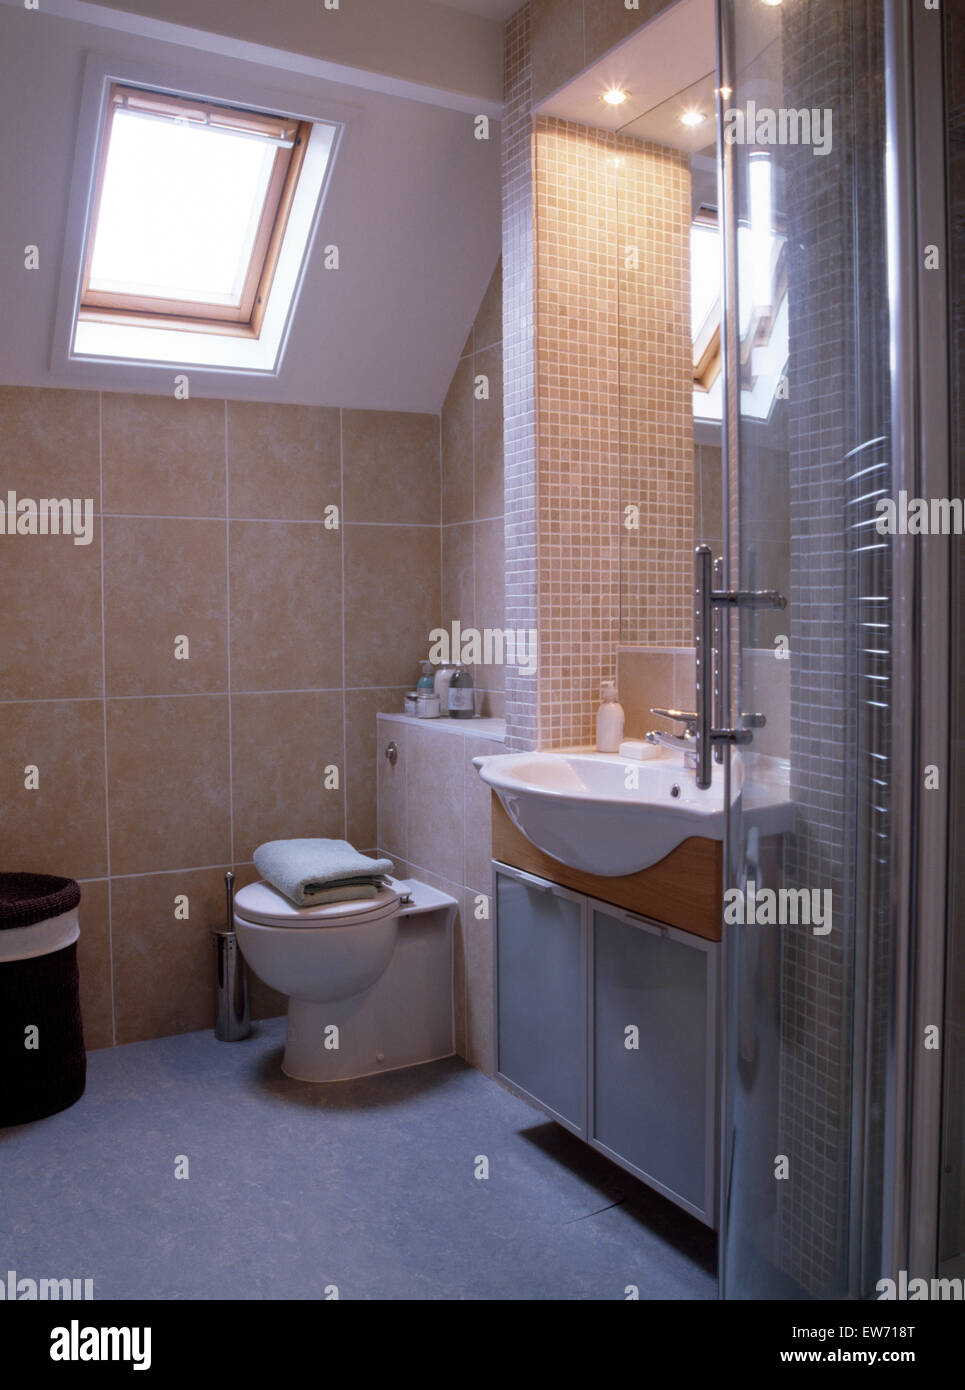 Velux window above toilet in small tiled attic bathroom Stock Photo ...